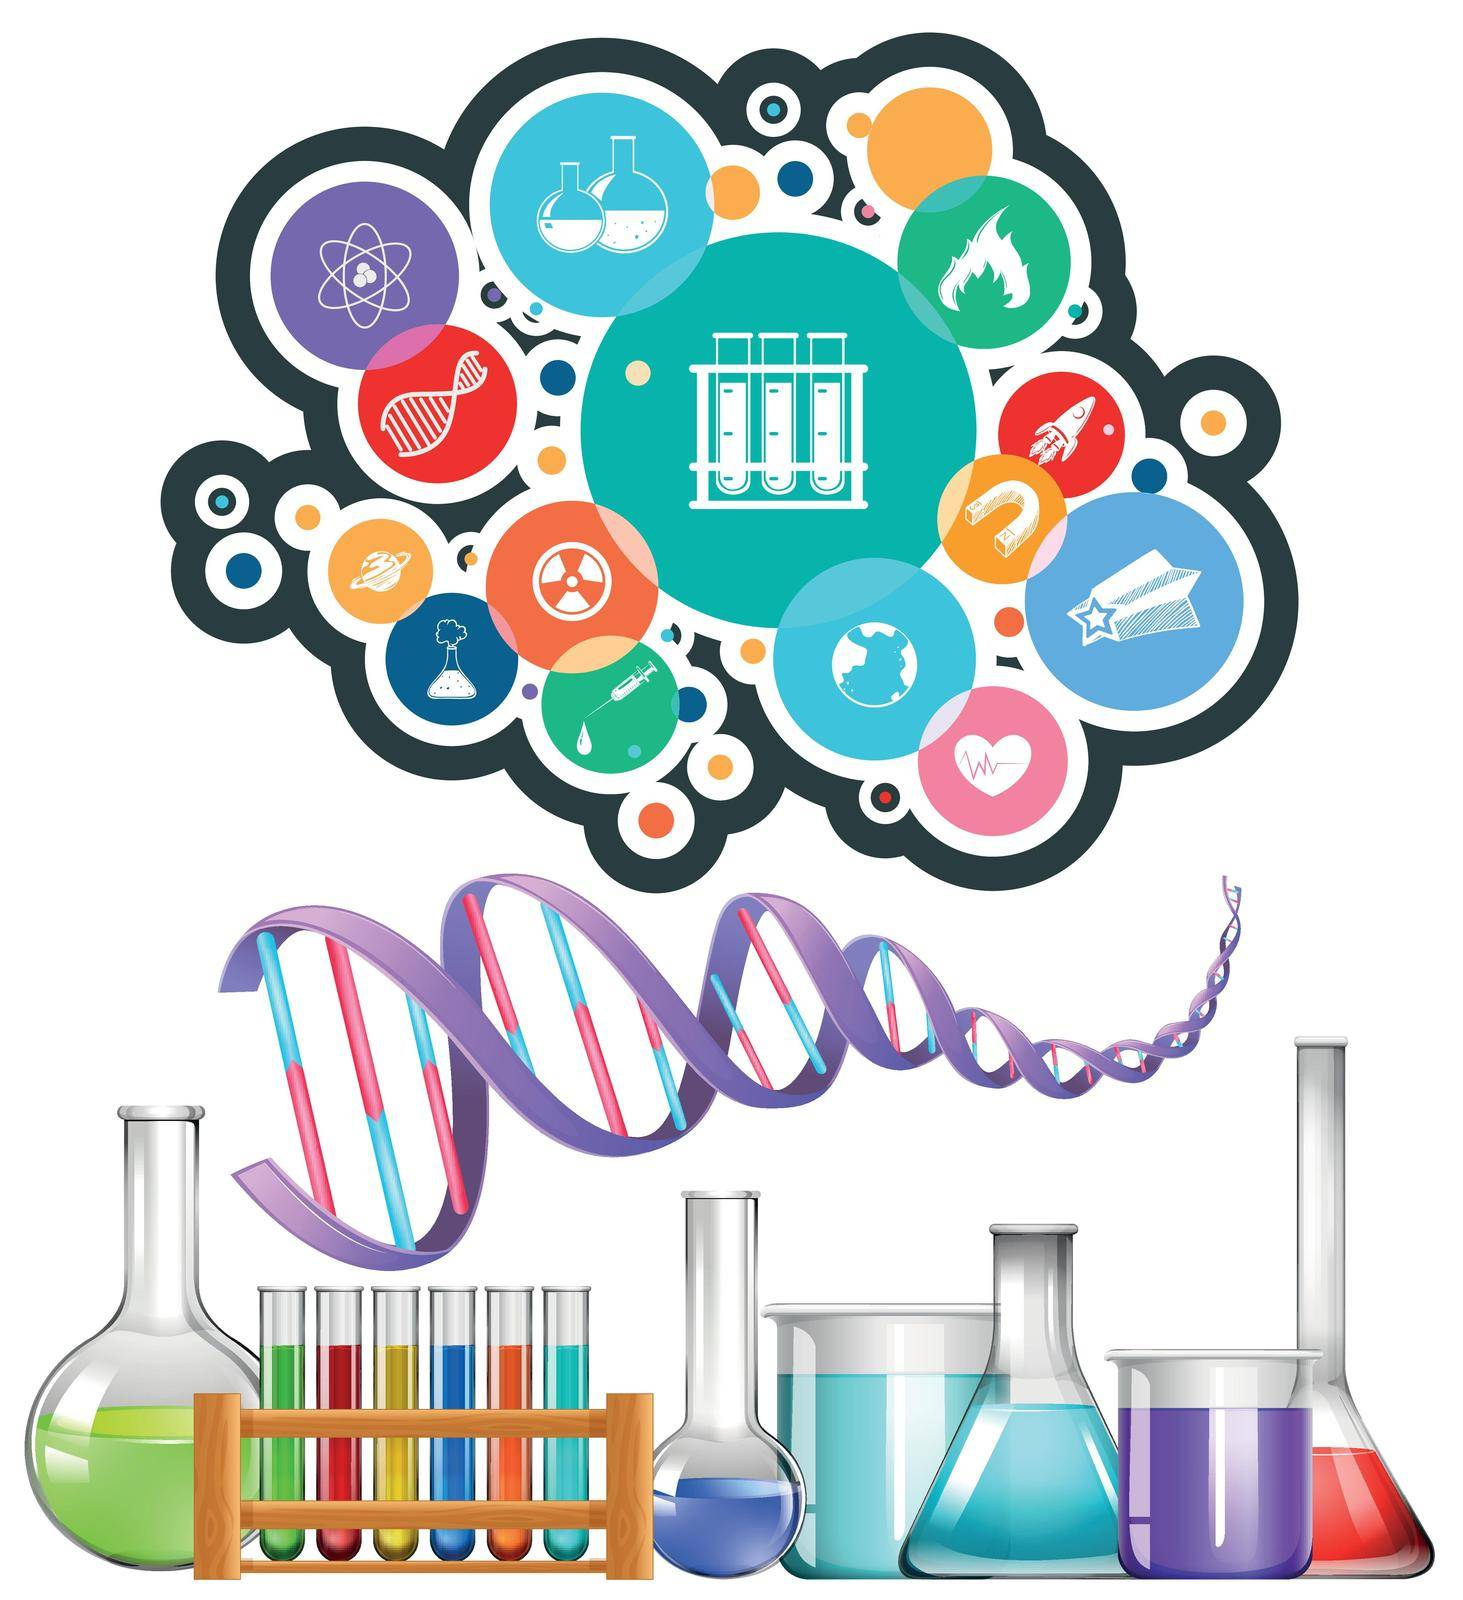 Science equipment and icons illustration